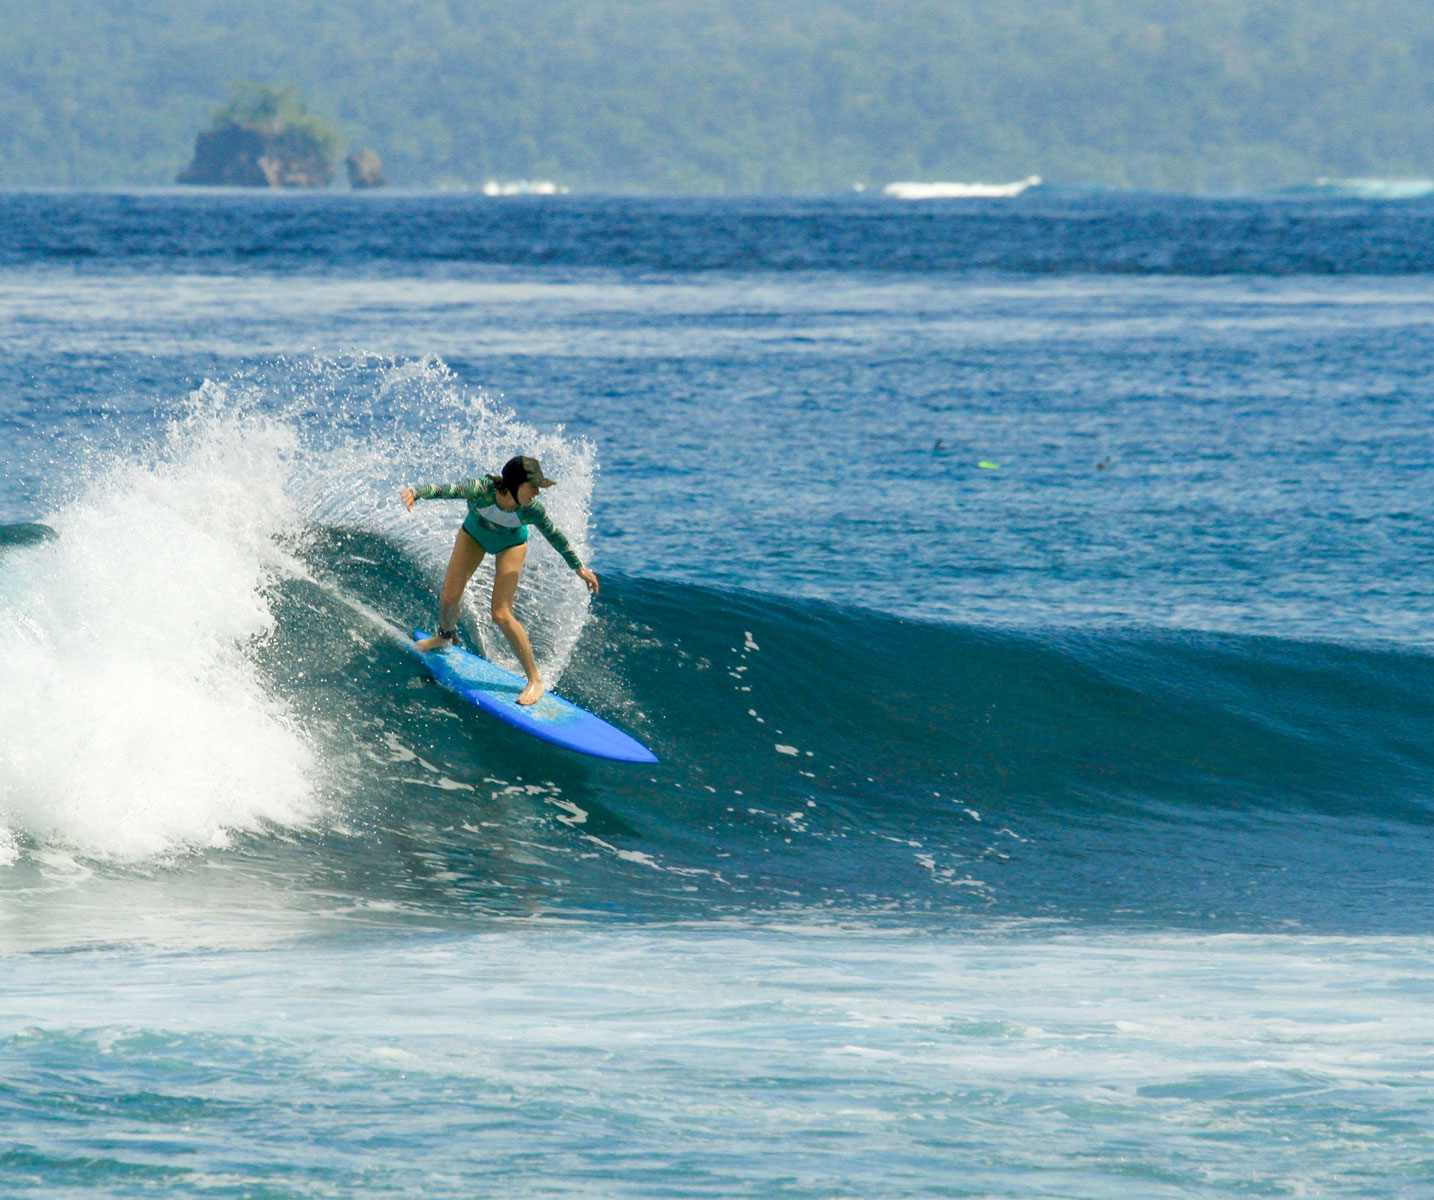 Fun, easy lefts at Bagas.